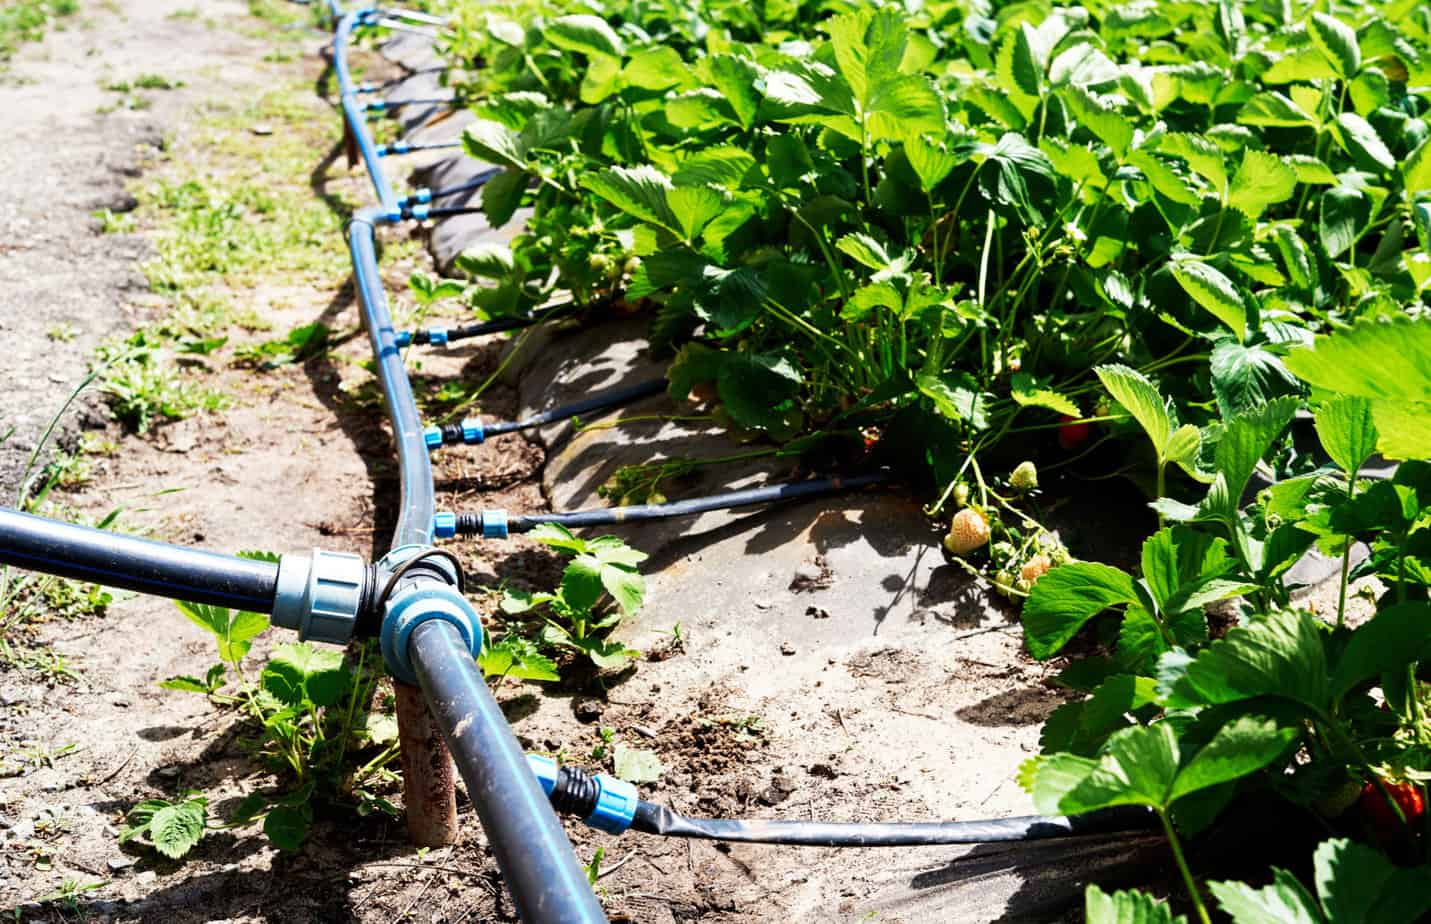 Smart Agricultural Irrigation Helps Conserve One of Our Most Precious Resources - Water